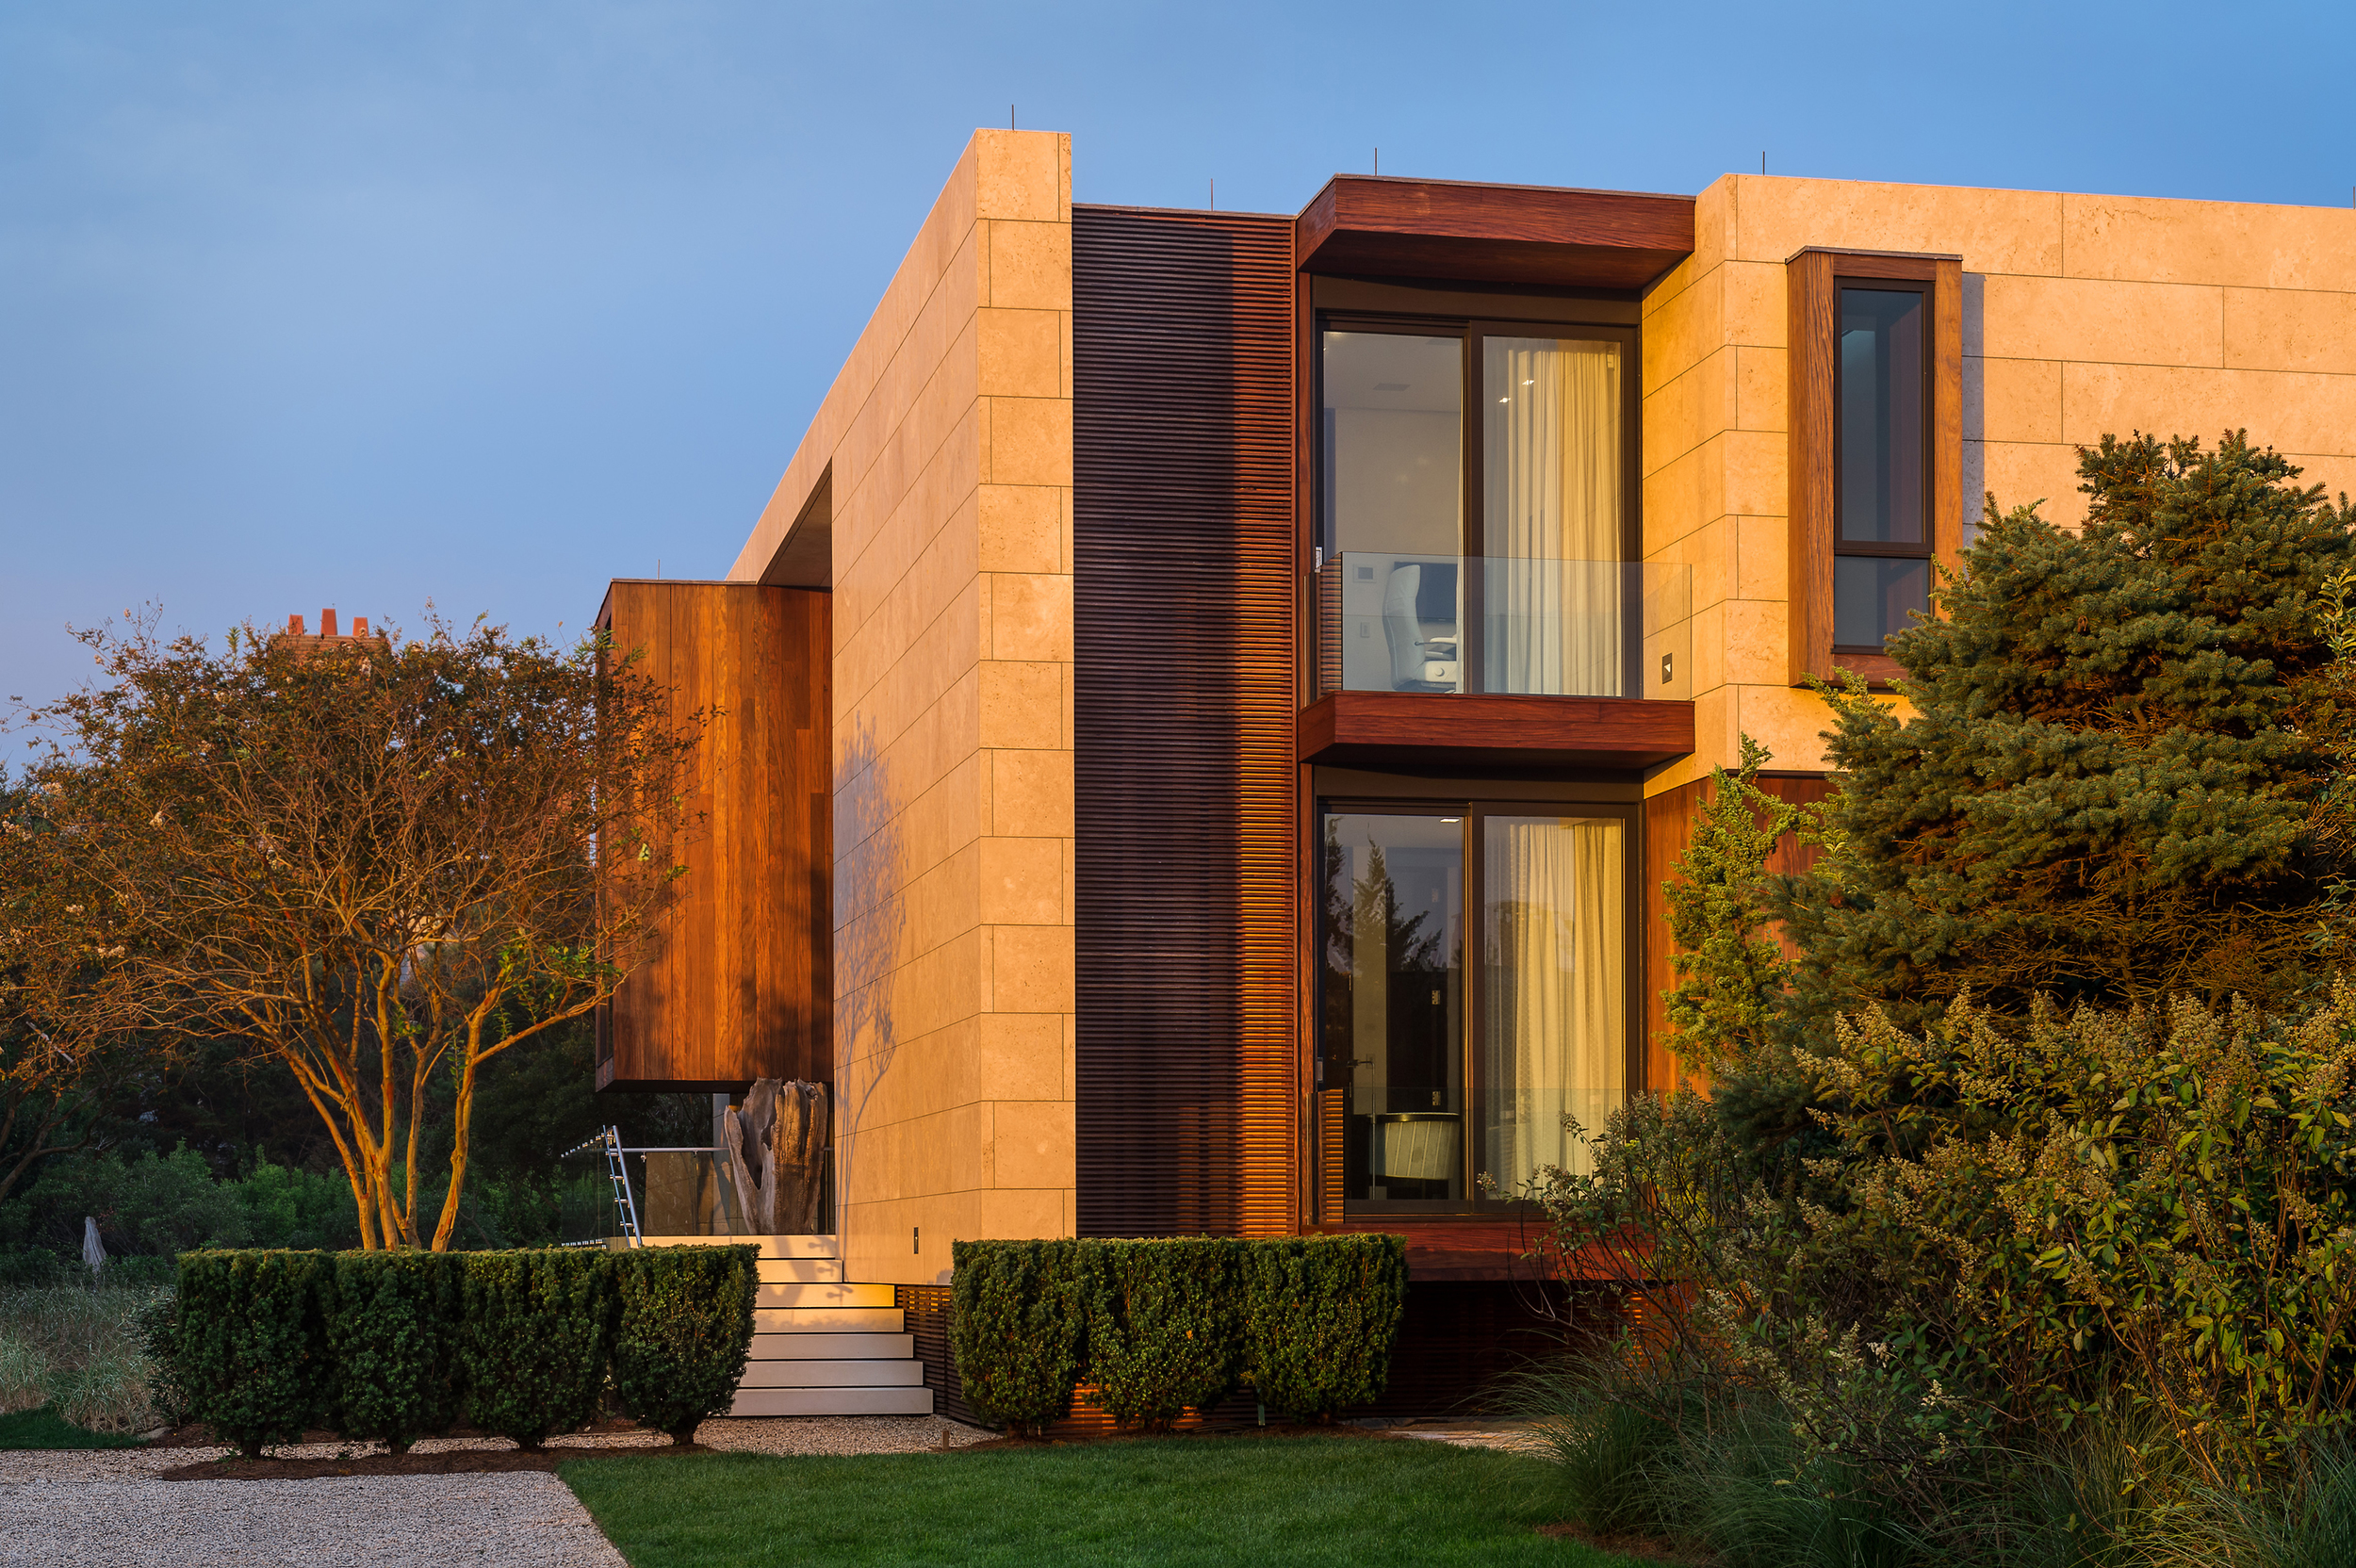 Top 10 incredible modern houses in the united states Modern house architect new york